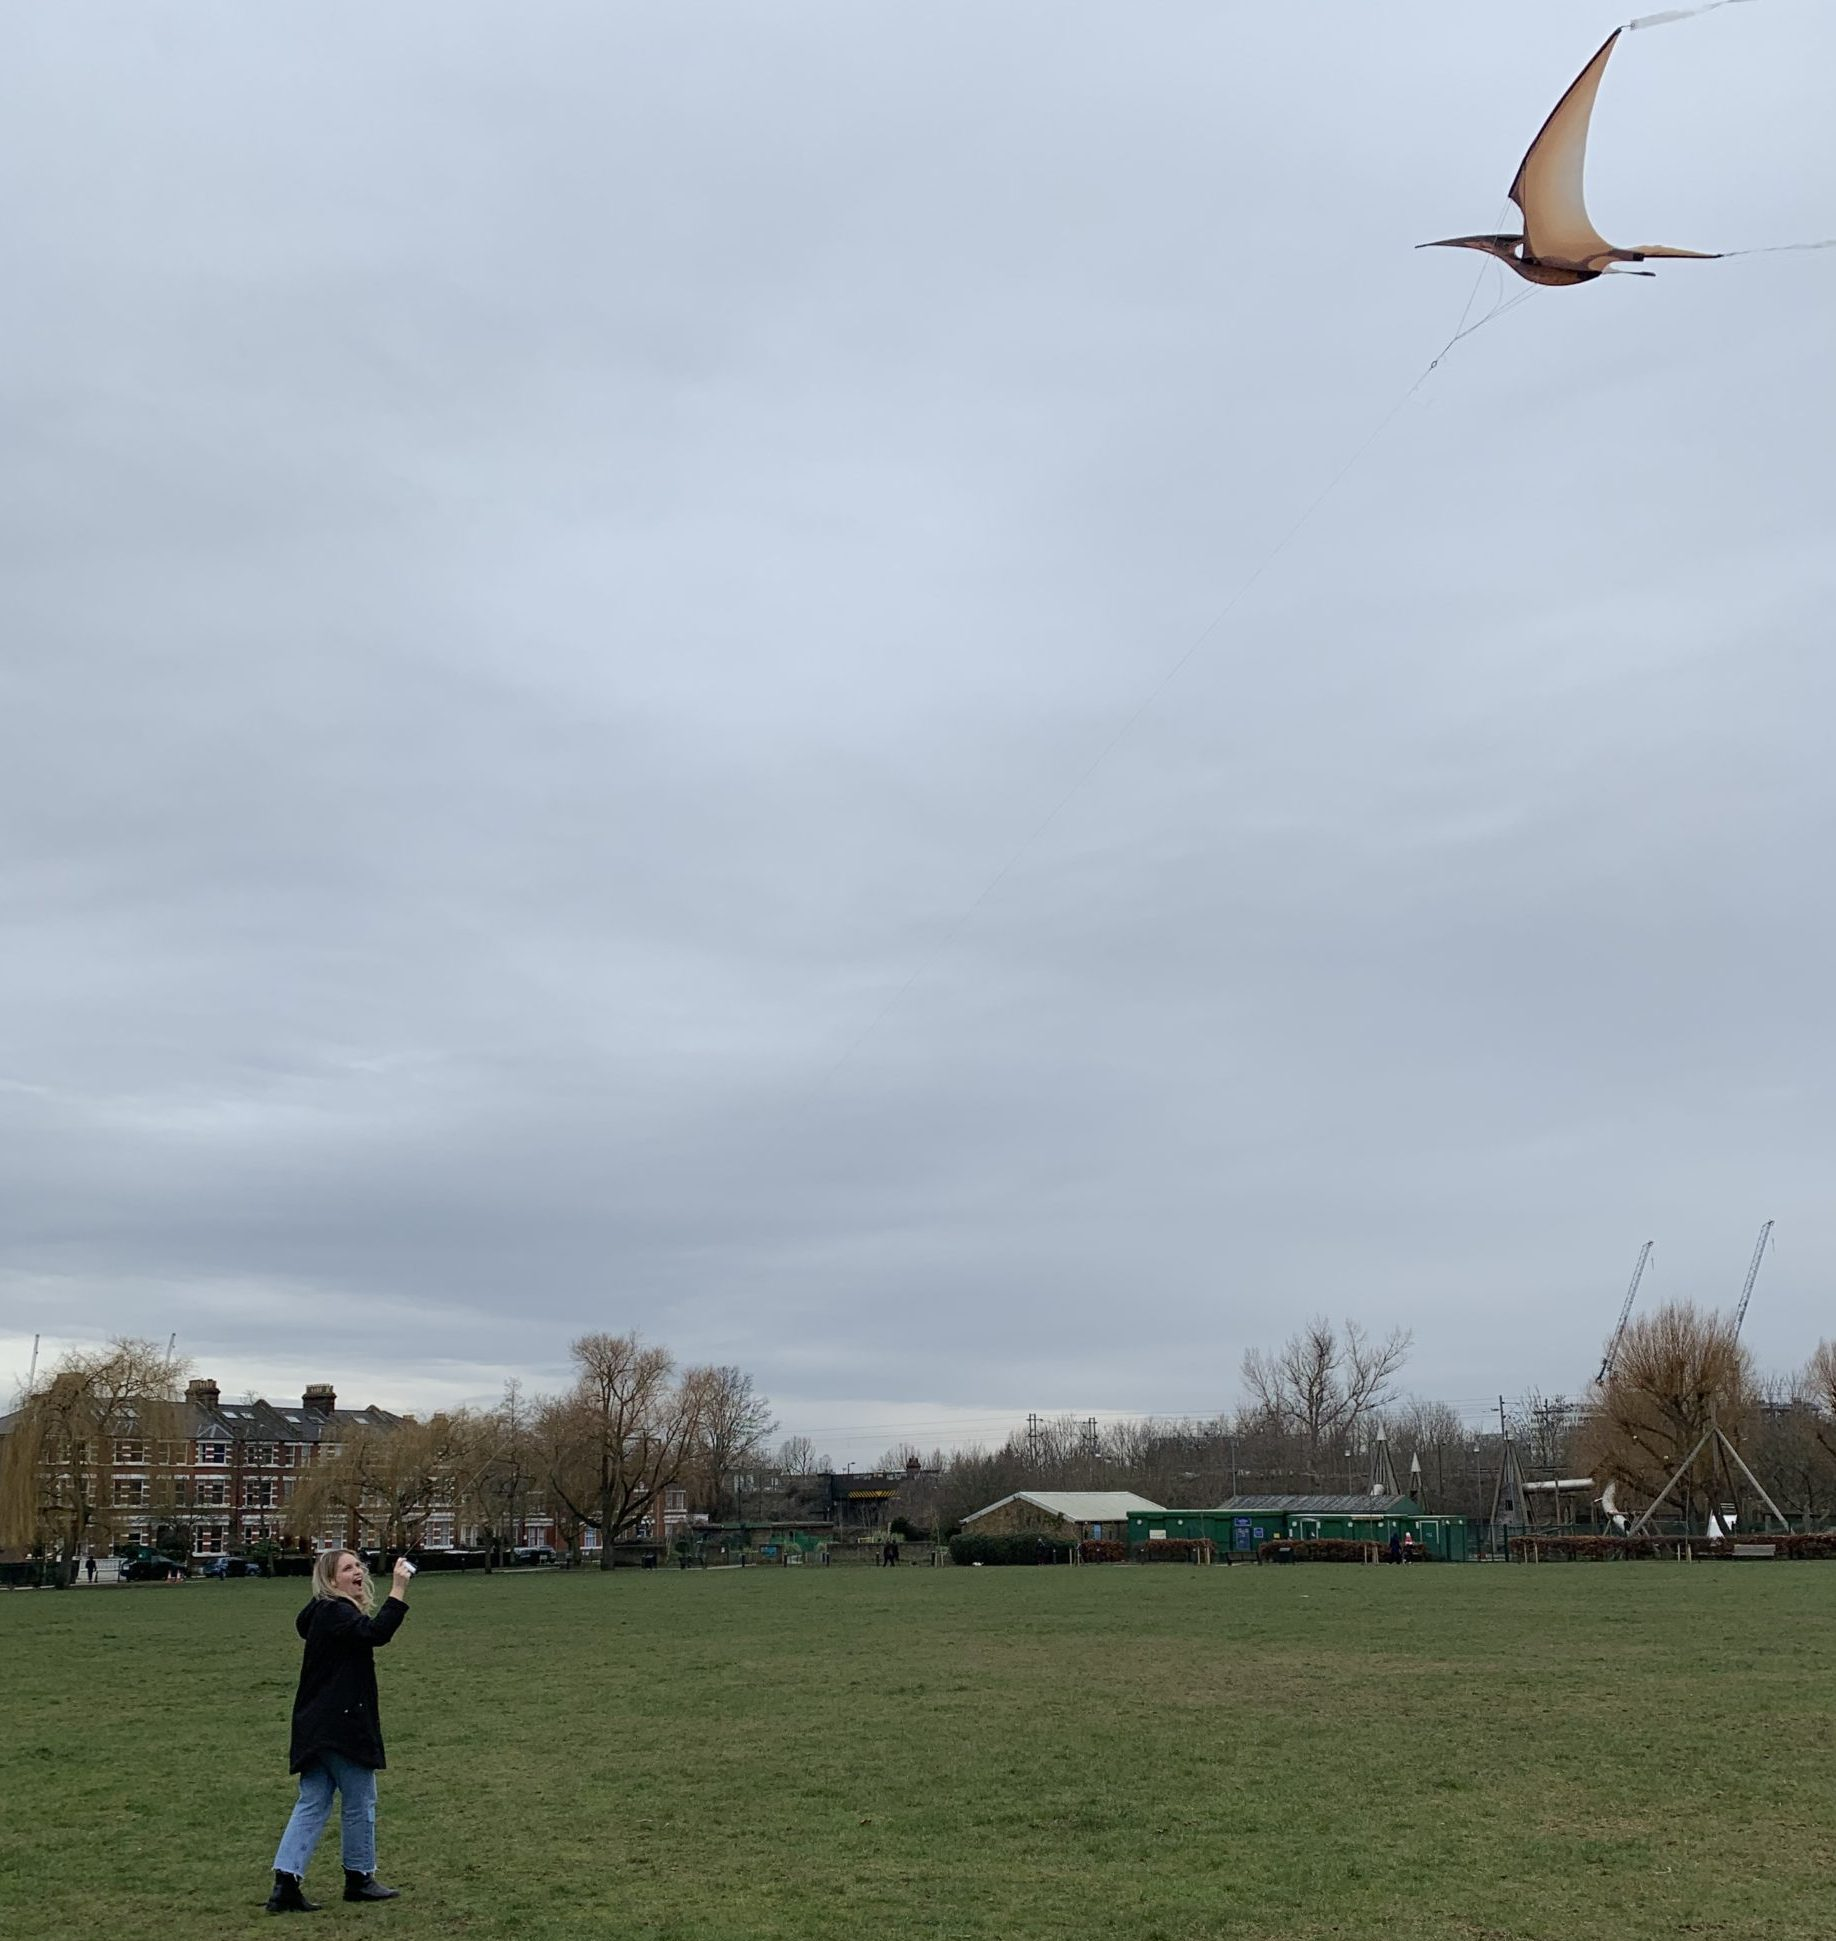 Absolutely love the kite!